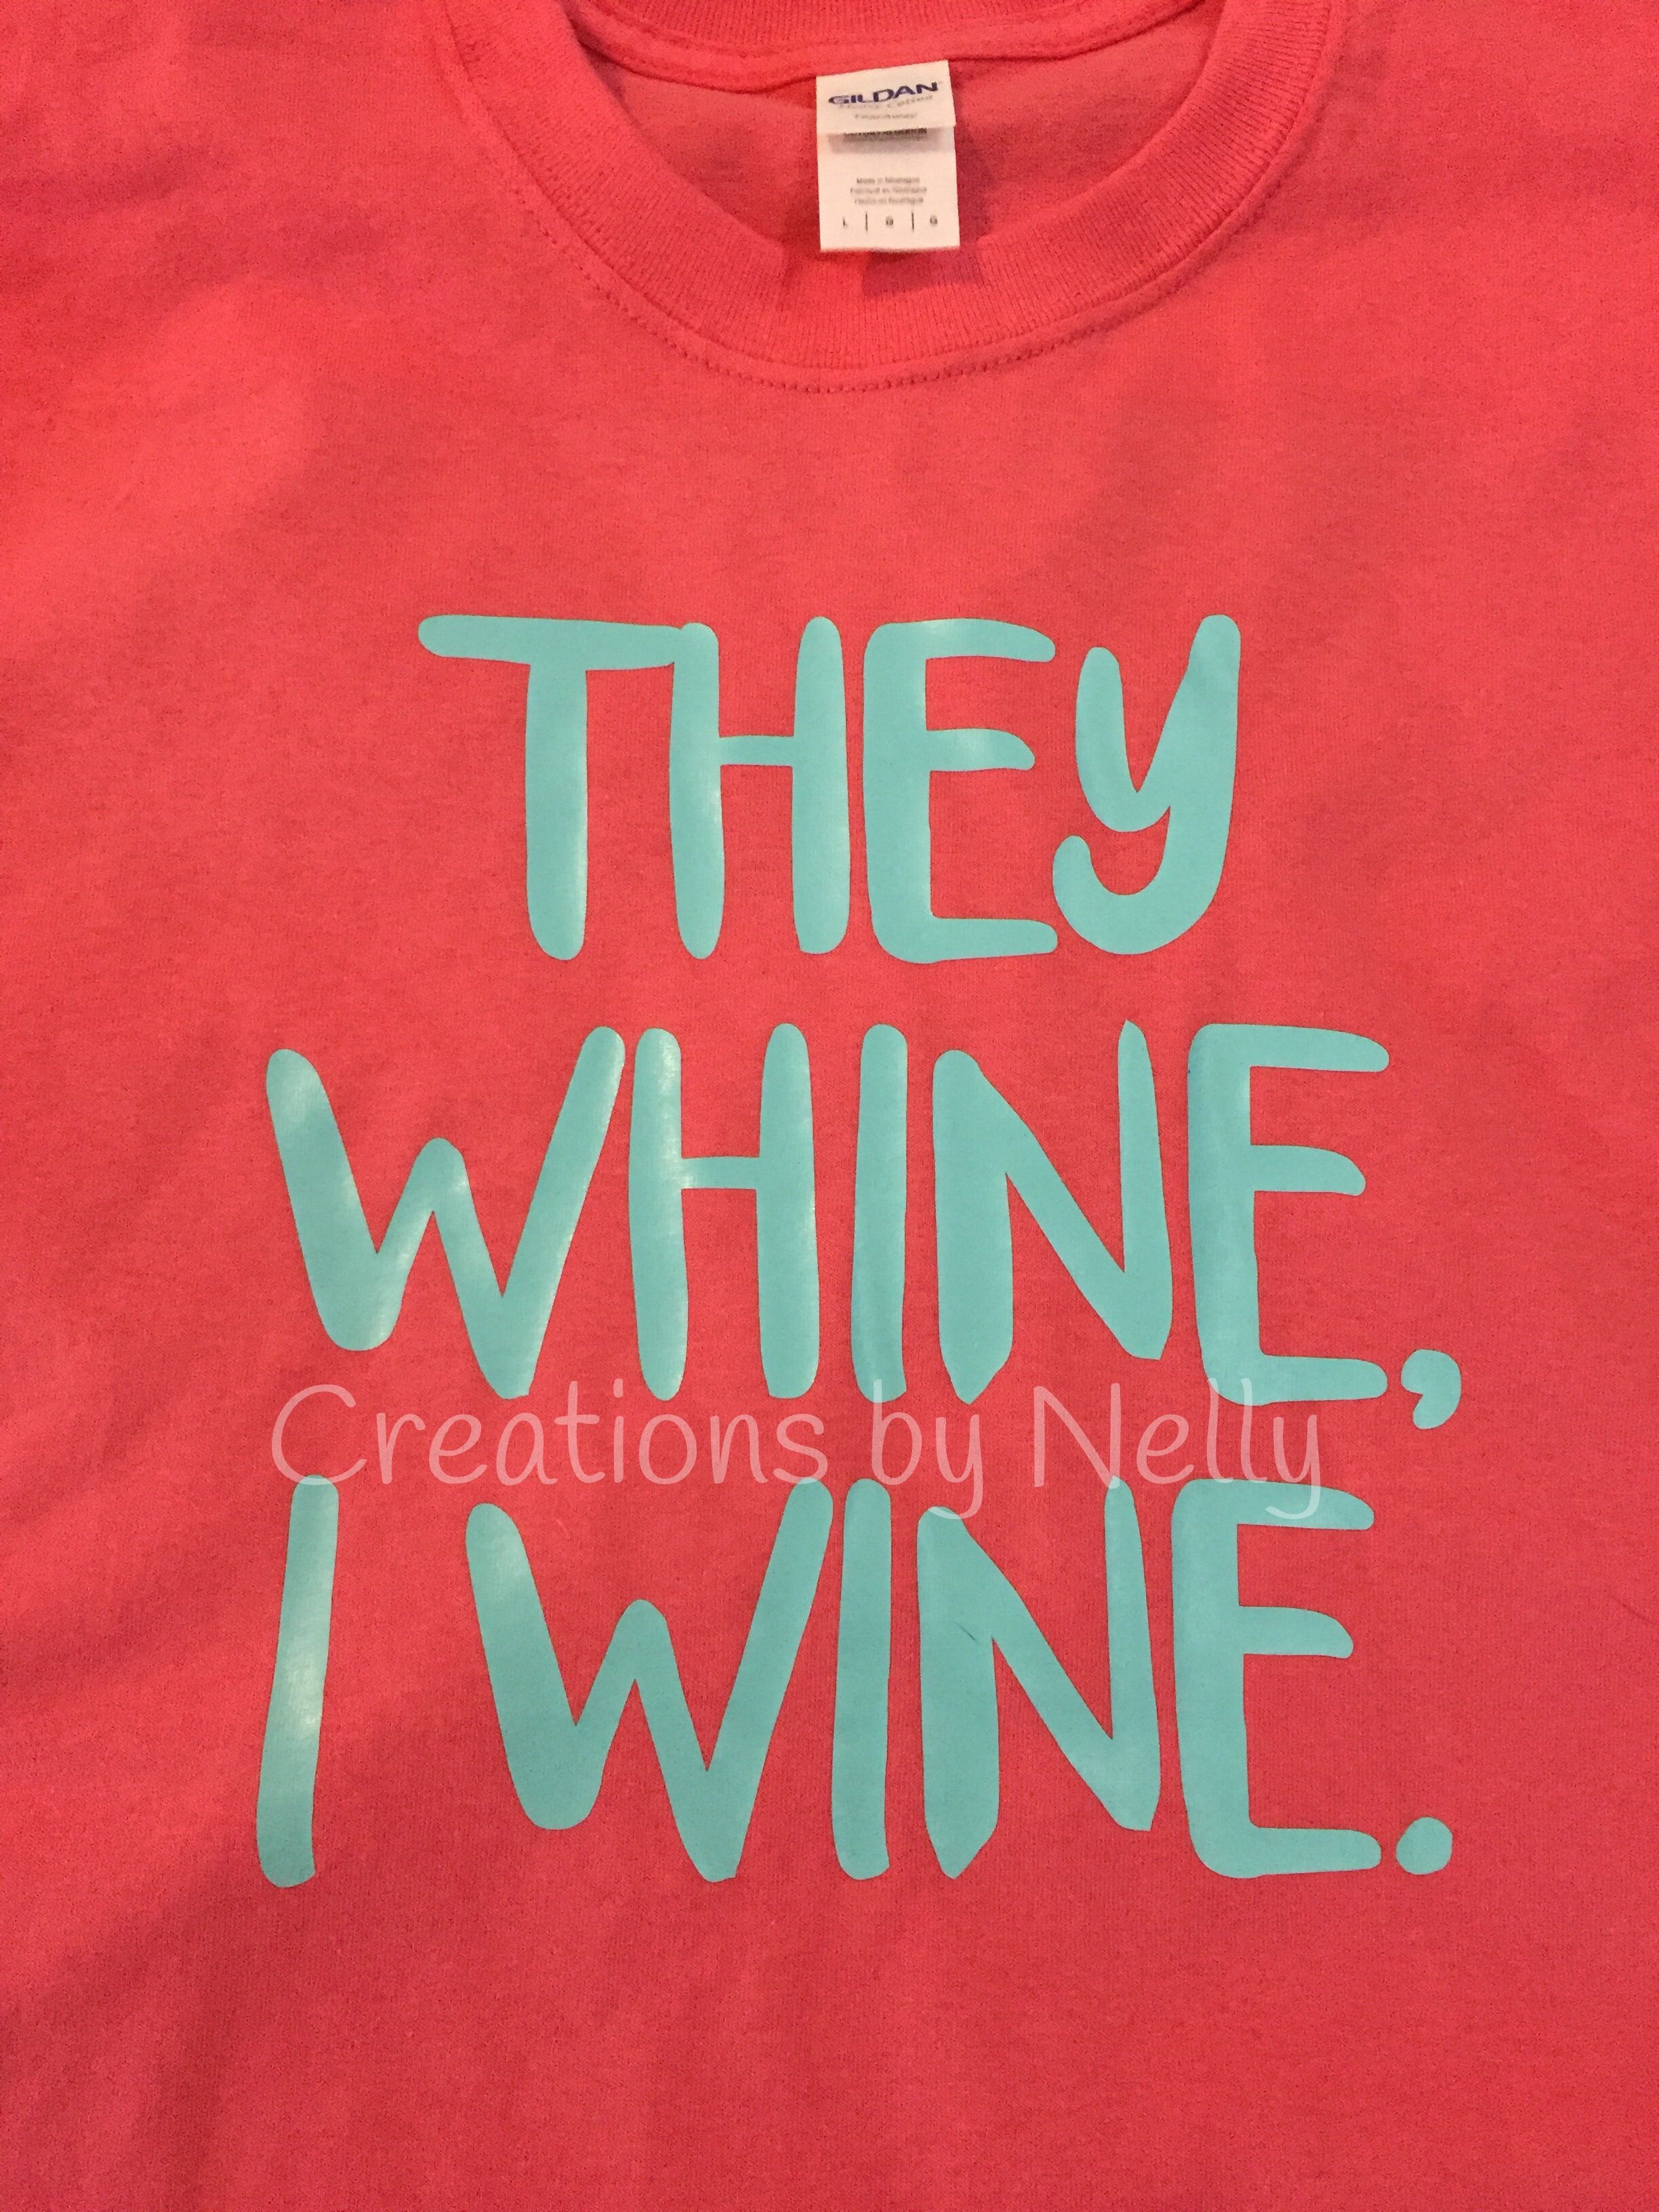 They Whine I Wine Custom Shirt Made By Me If Interested Please Email Me At Noelle311 Gmail Com Or Check Out My Facebook Pa Custom Shirts Custom Items Custom